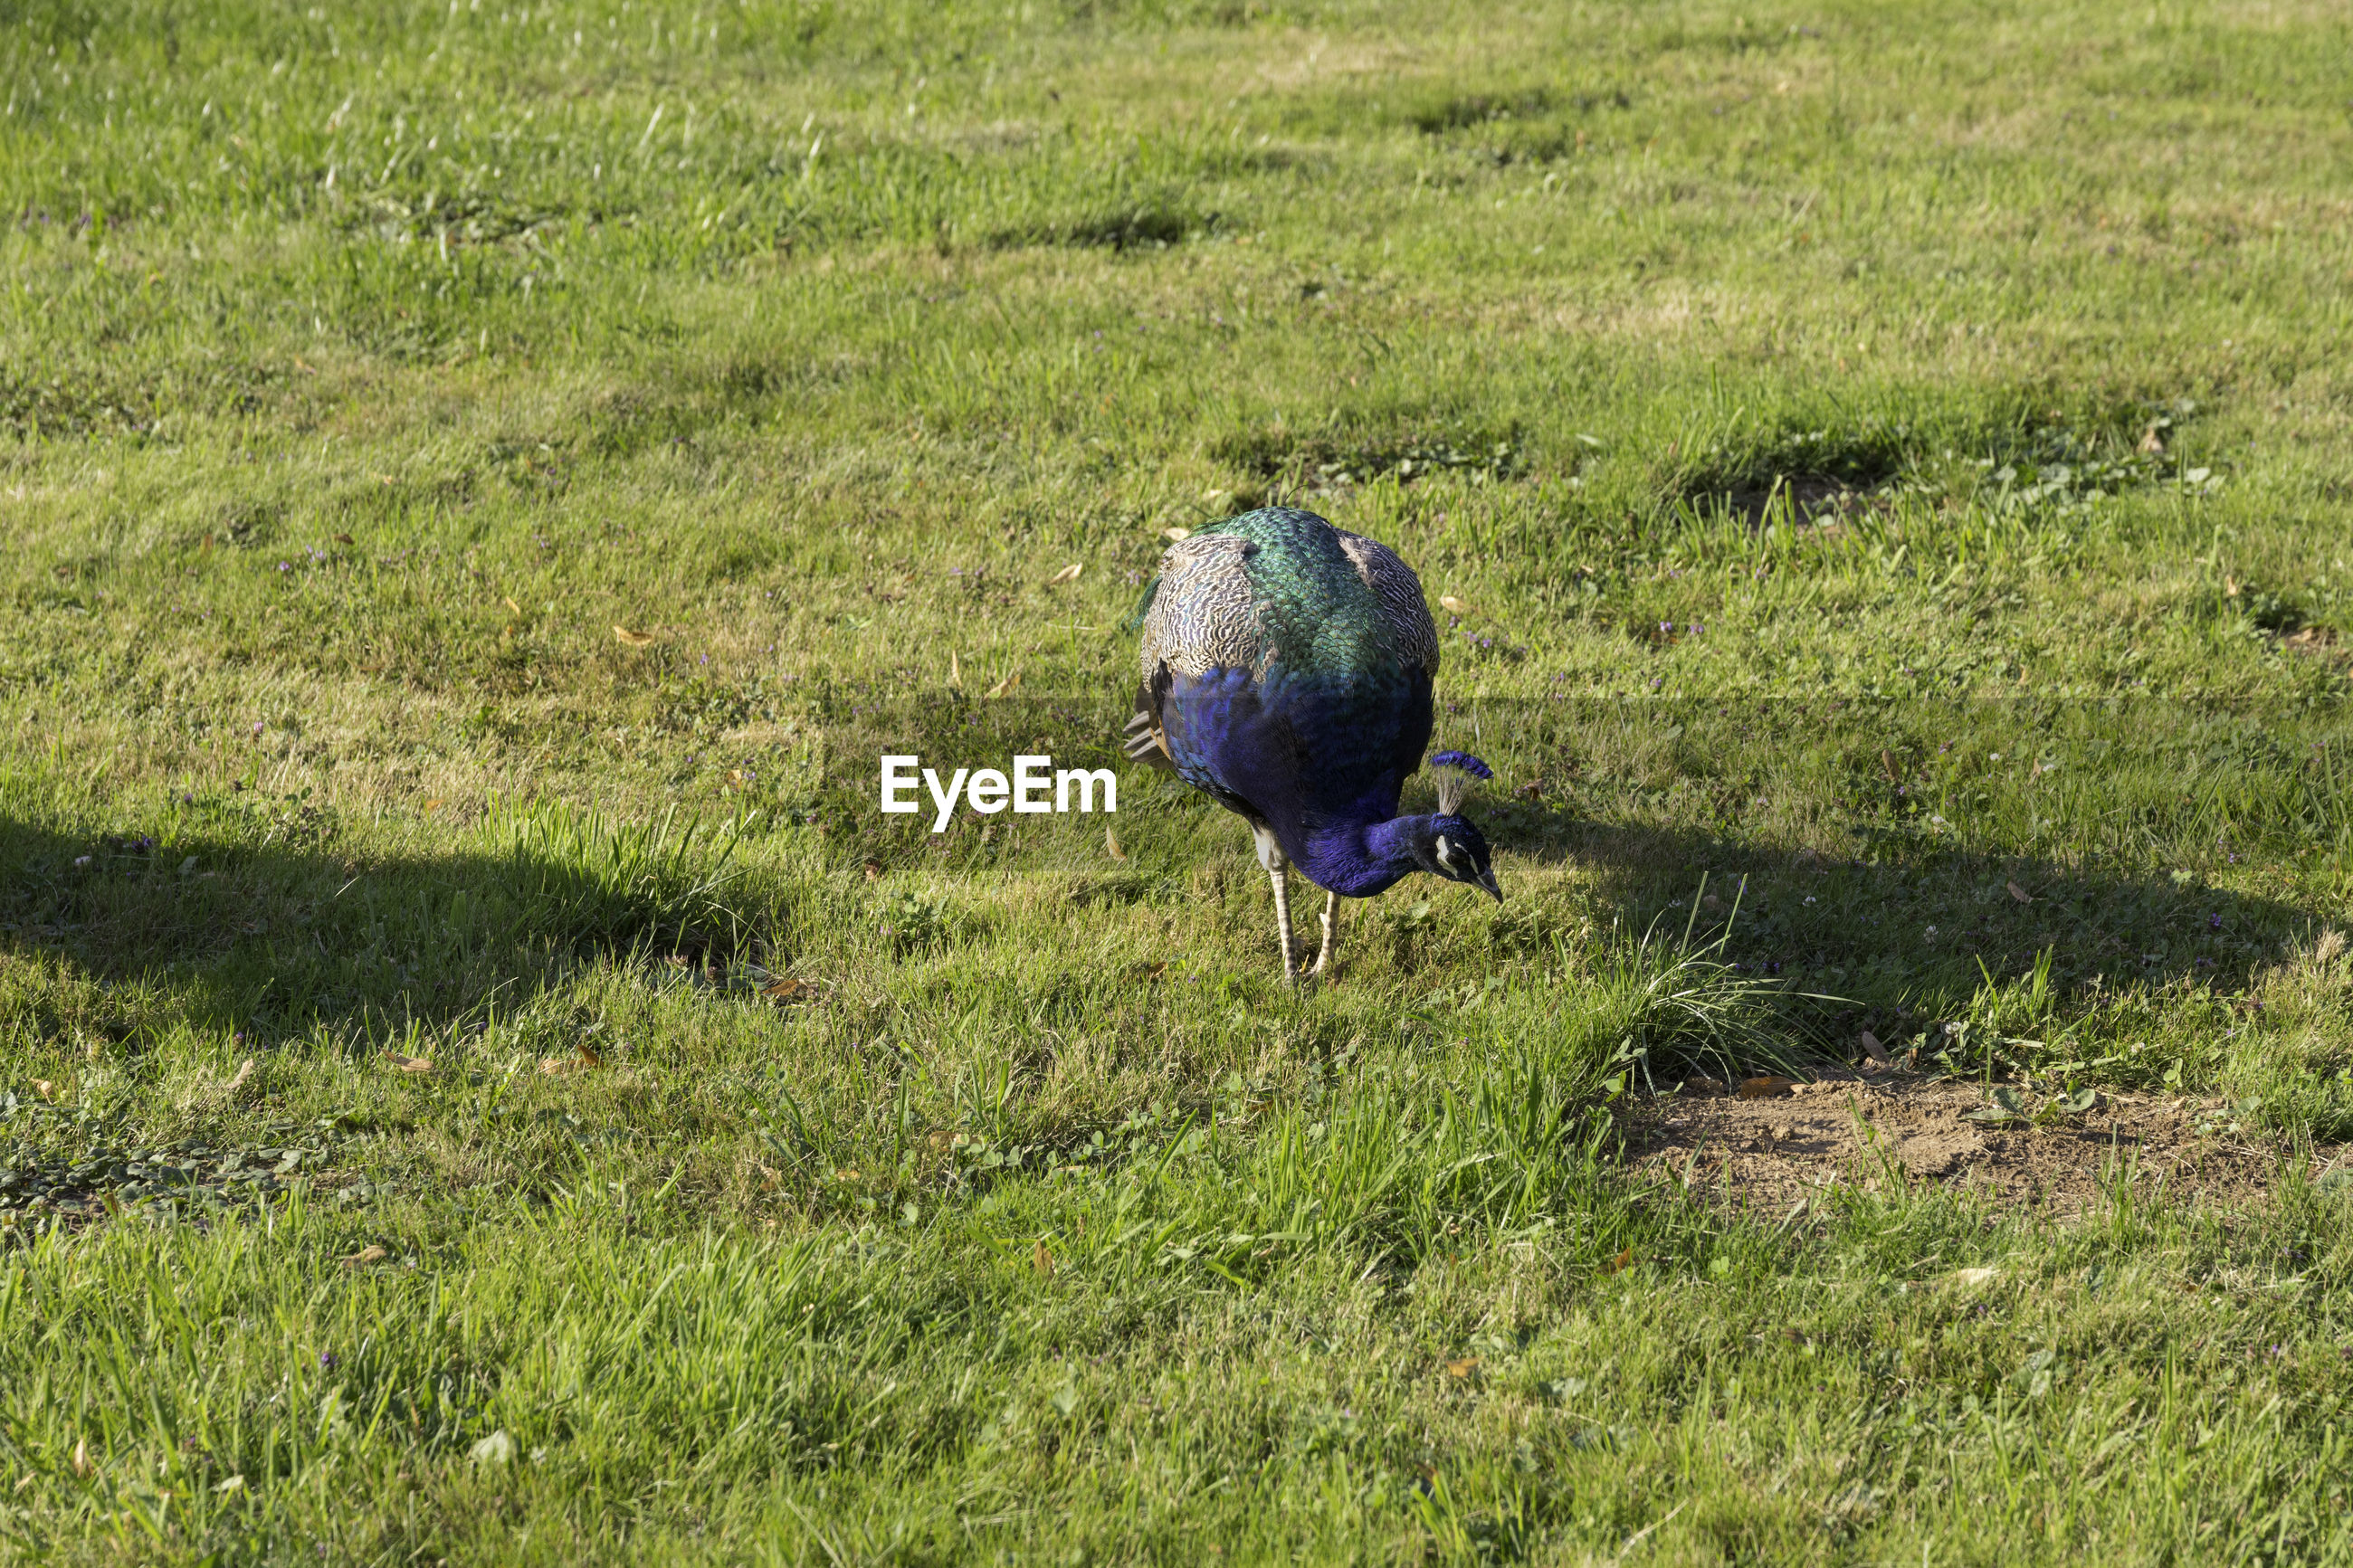 PEACOCK ON GRASS